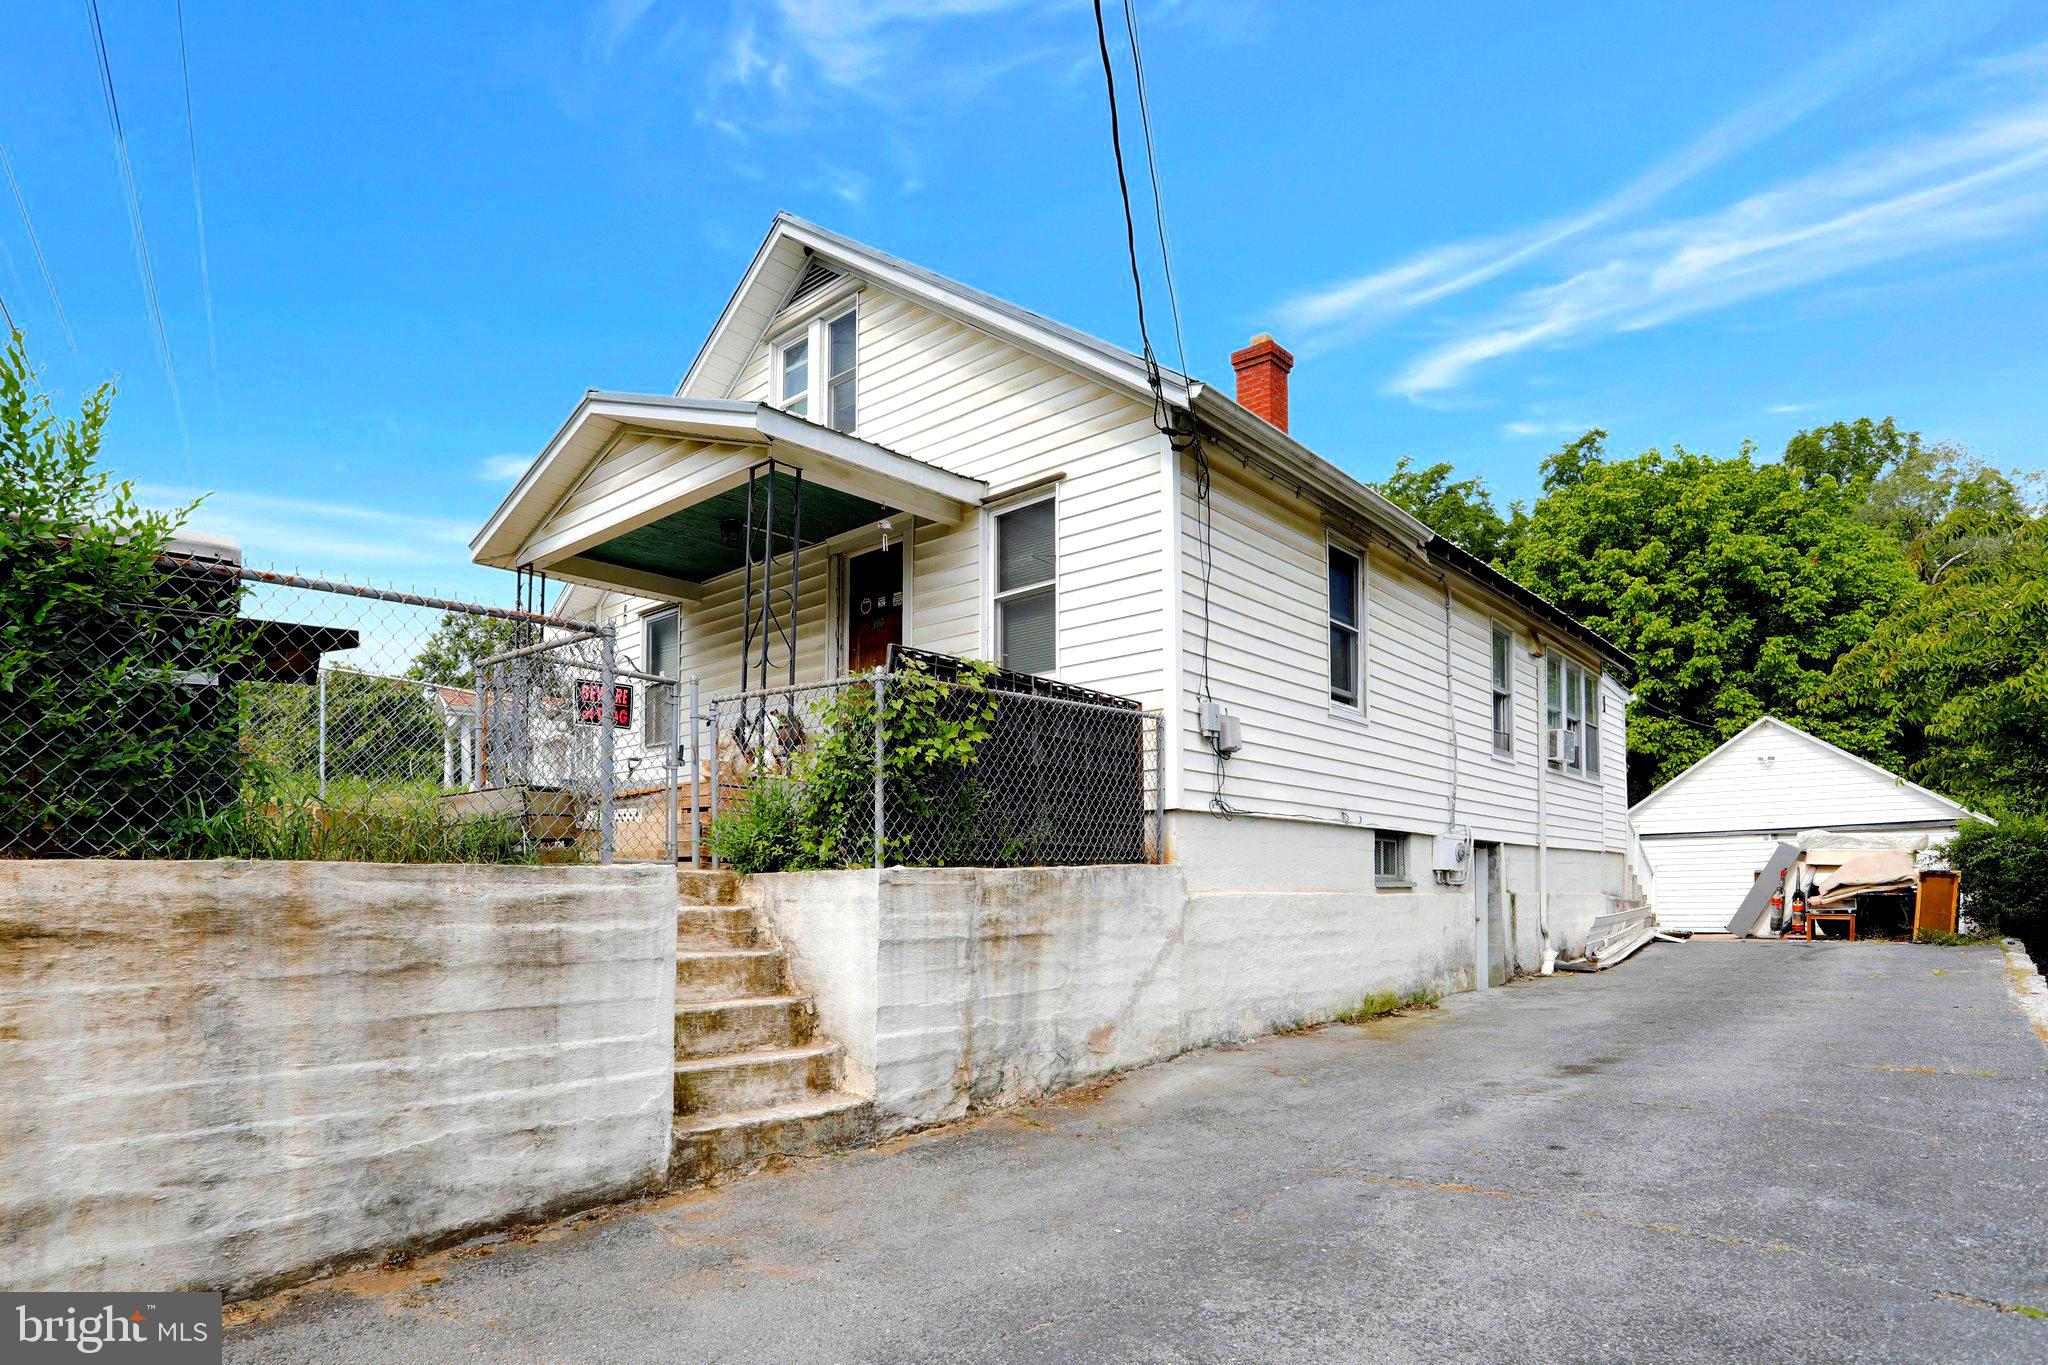 3 bed 1 bath bungalow! Home offers hardwood floors, finished attic, and recent updates made througho